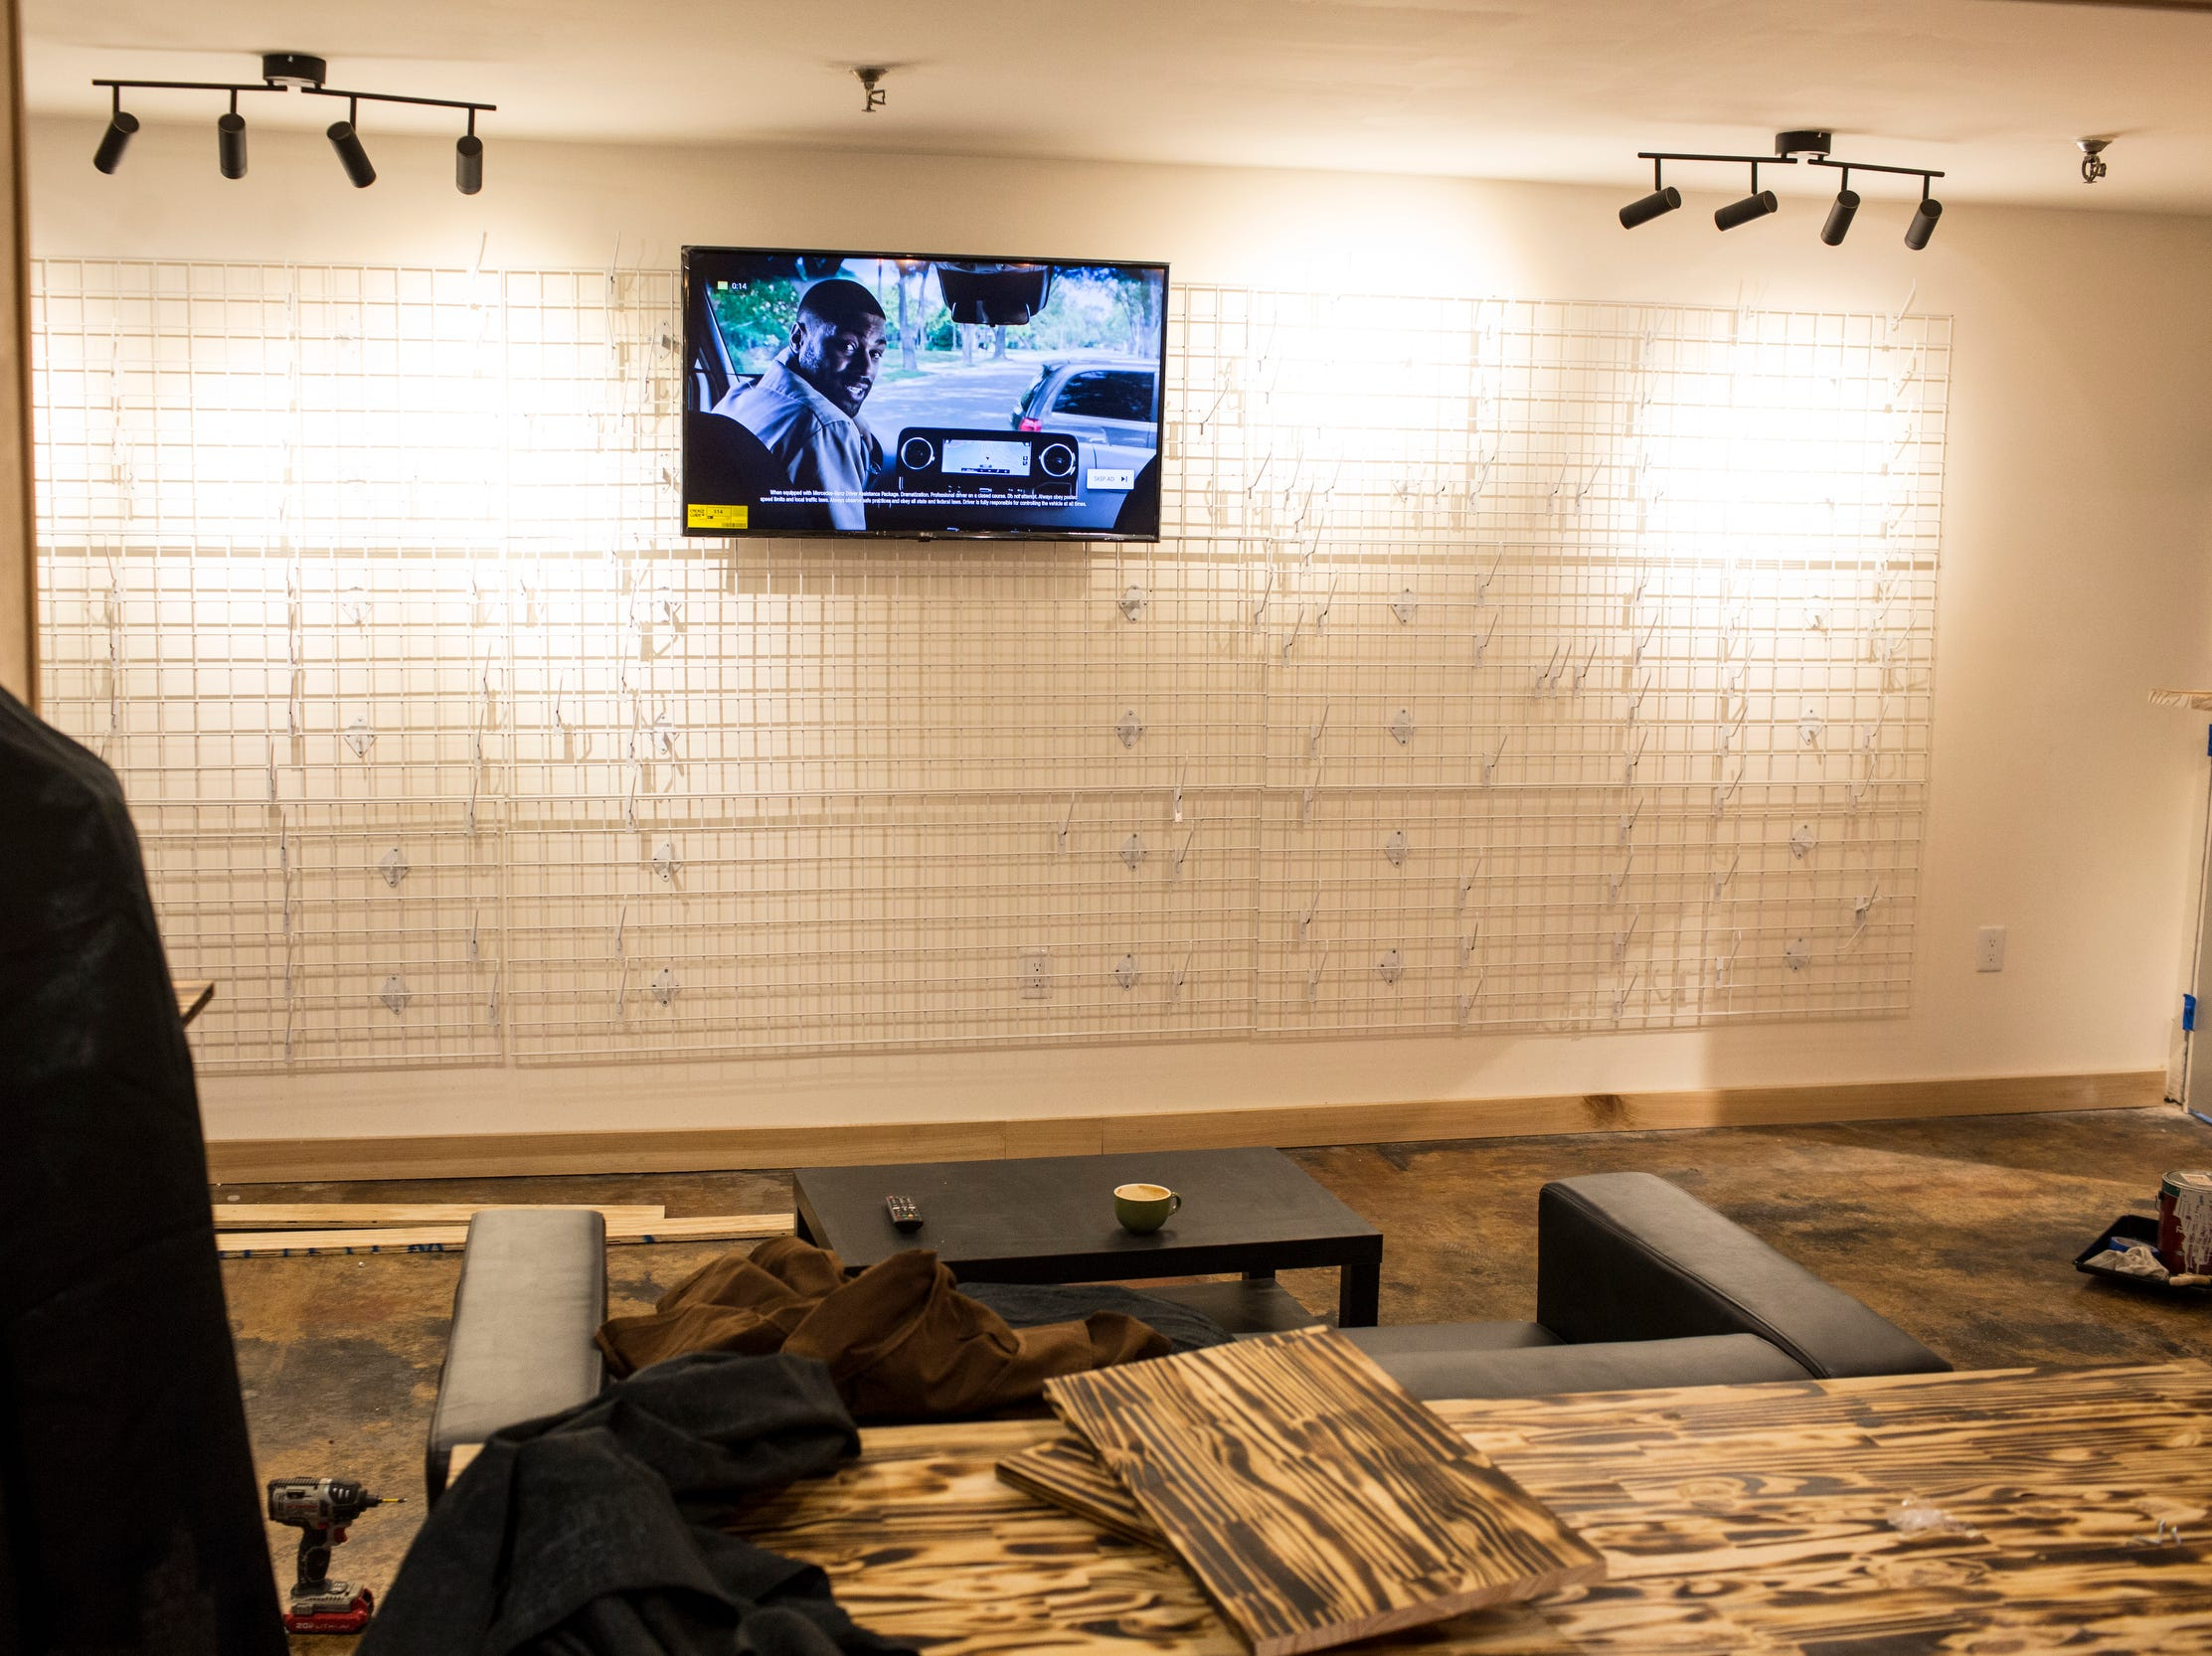 December 13 2018 - Society Skatepark & Coffee will be opening soon at  583 Scott Street. The building features an indoor skatepark, coffee shop and skate shop.